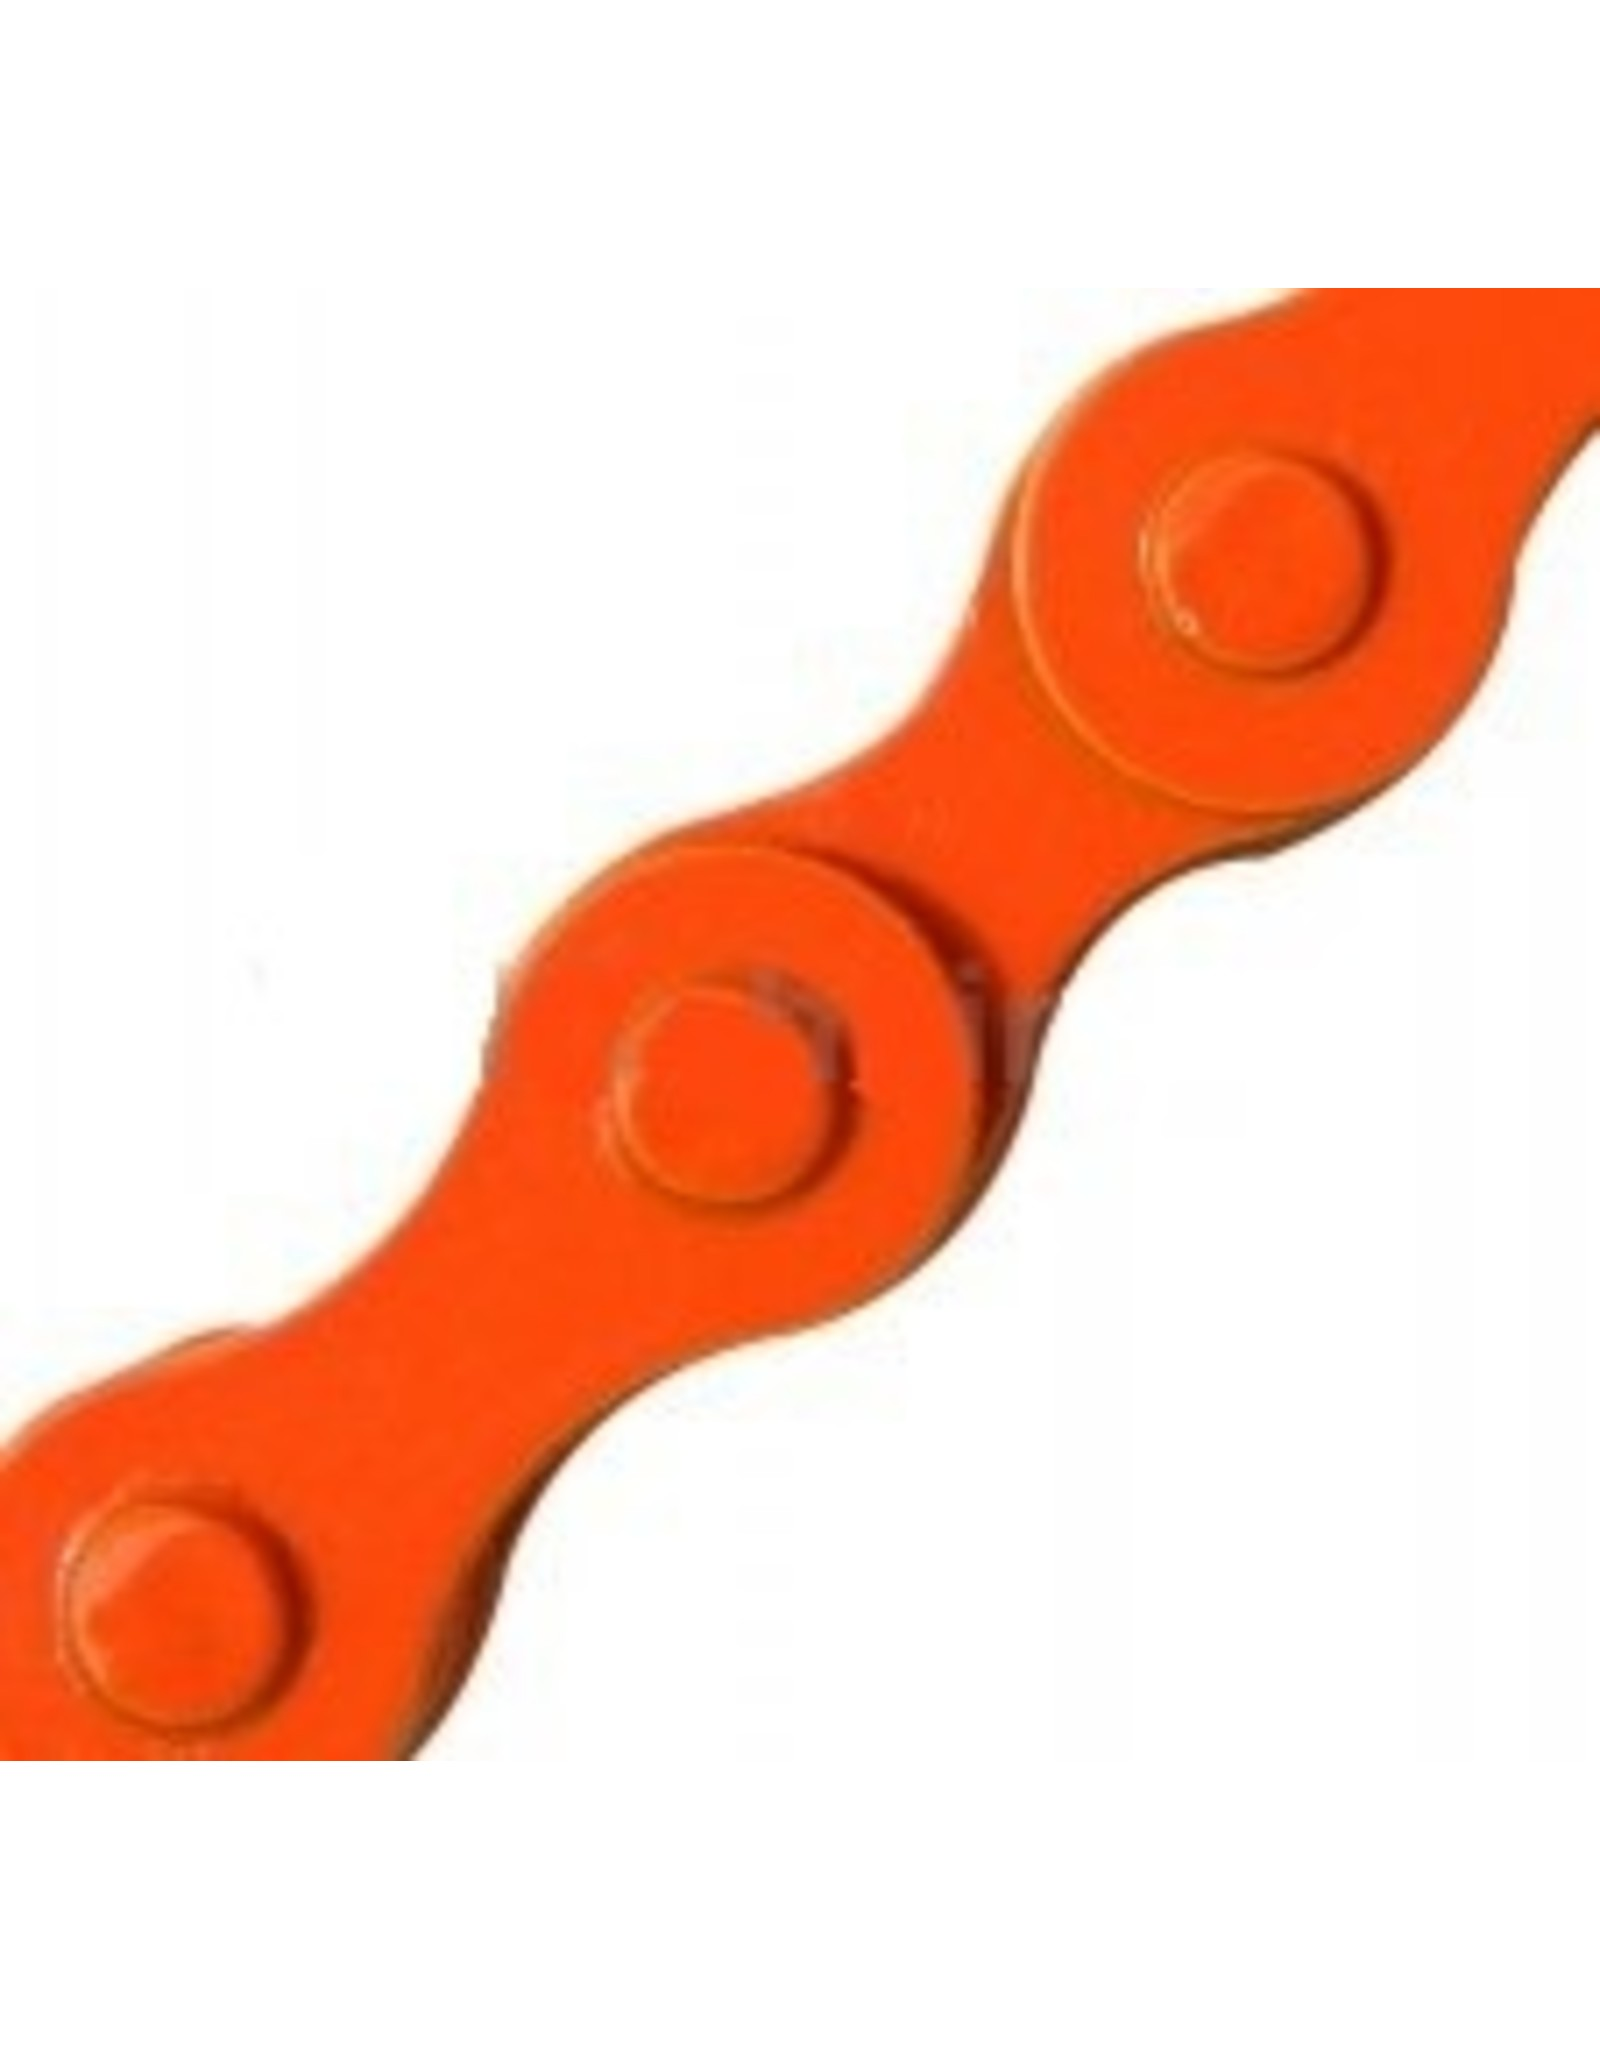 "KMC Chain KMC S1 1/2""x1/8"" Orange"